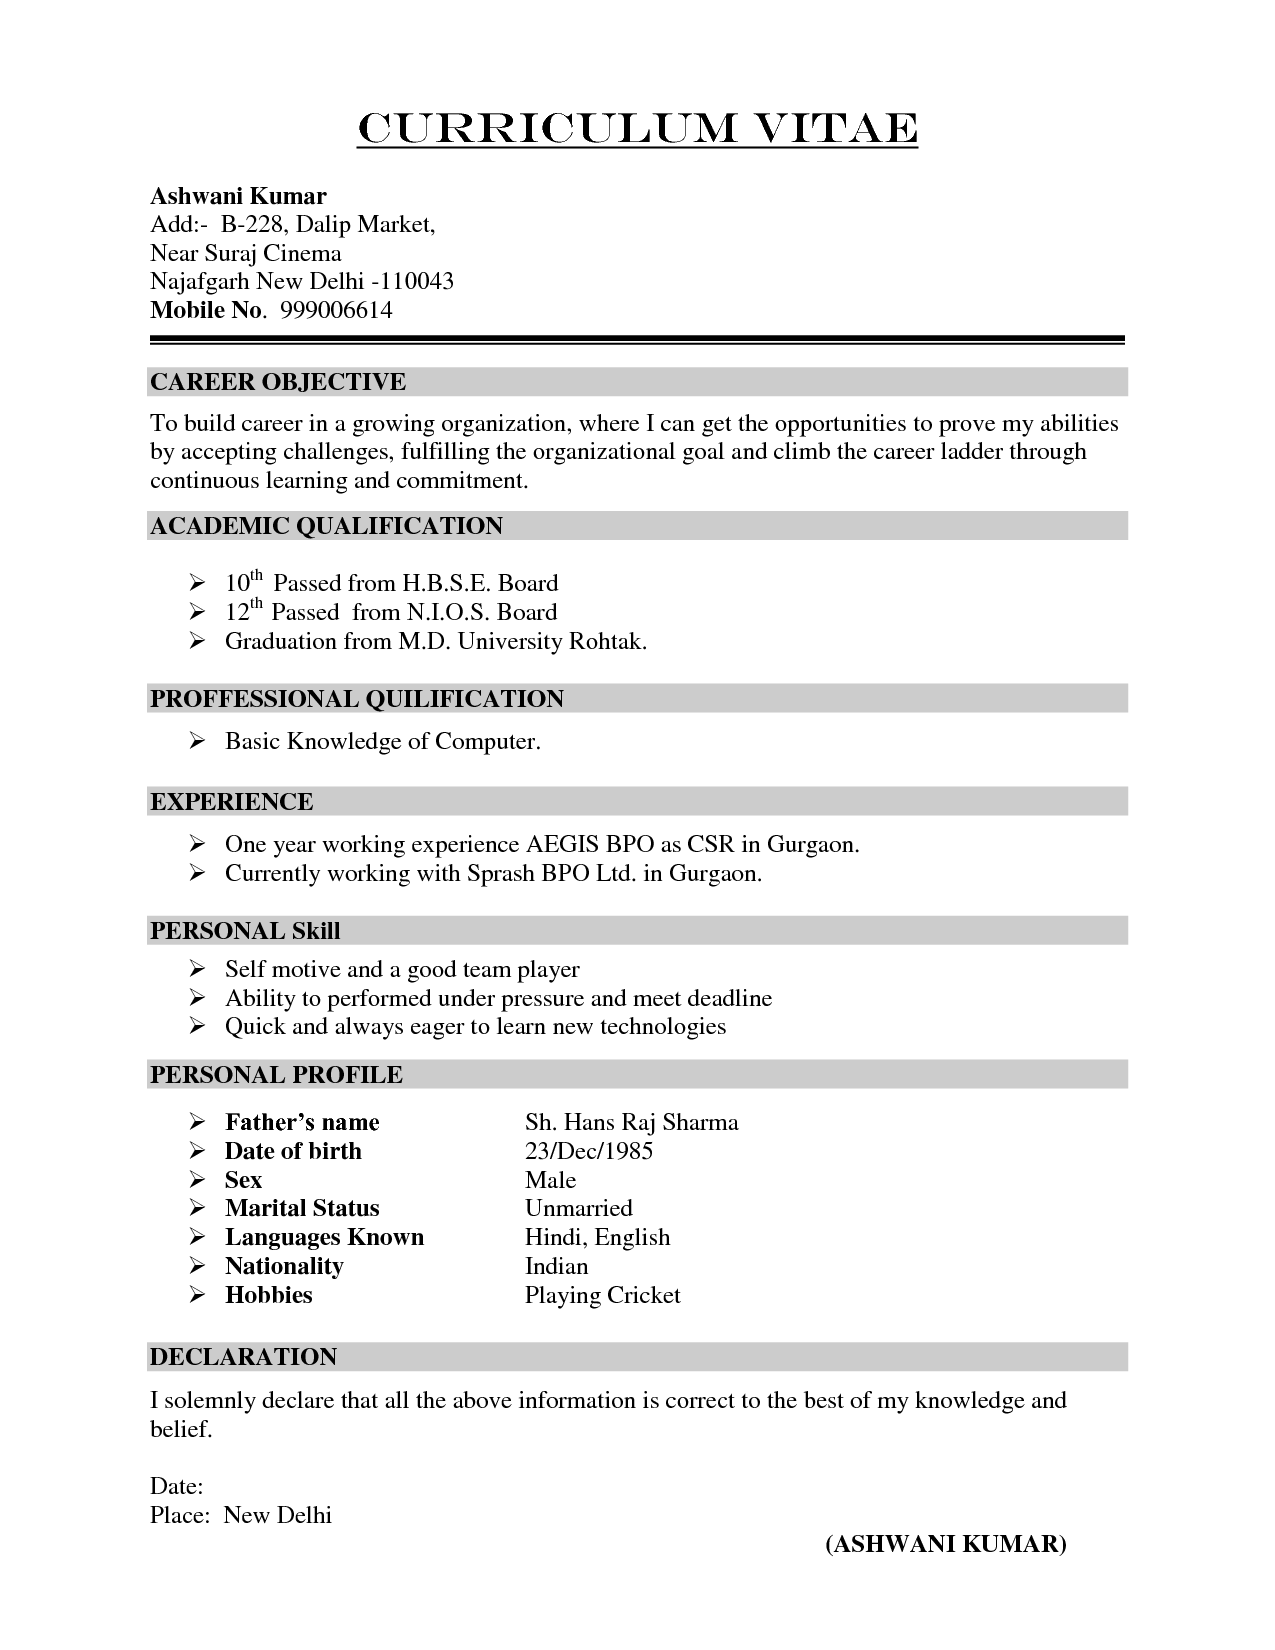 resume What Is A Resume Cv what is a cv resume examples samples of termination letter format 2017 curriculum vitae sample 7 exampleshtml exam